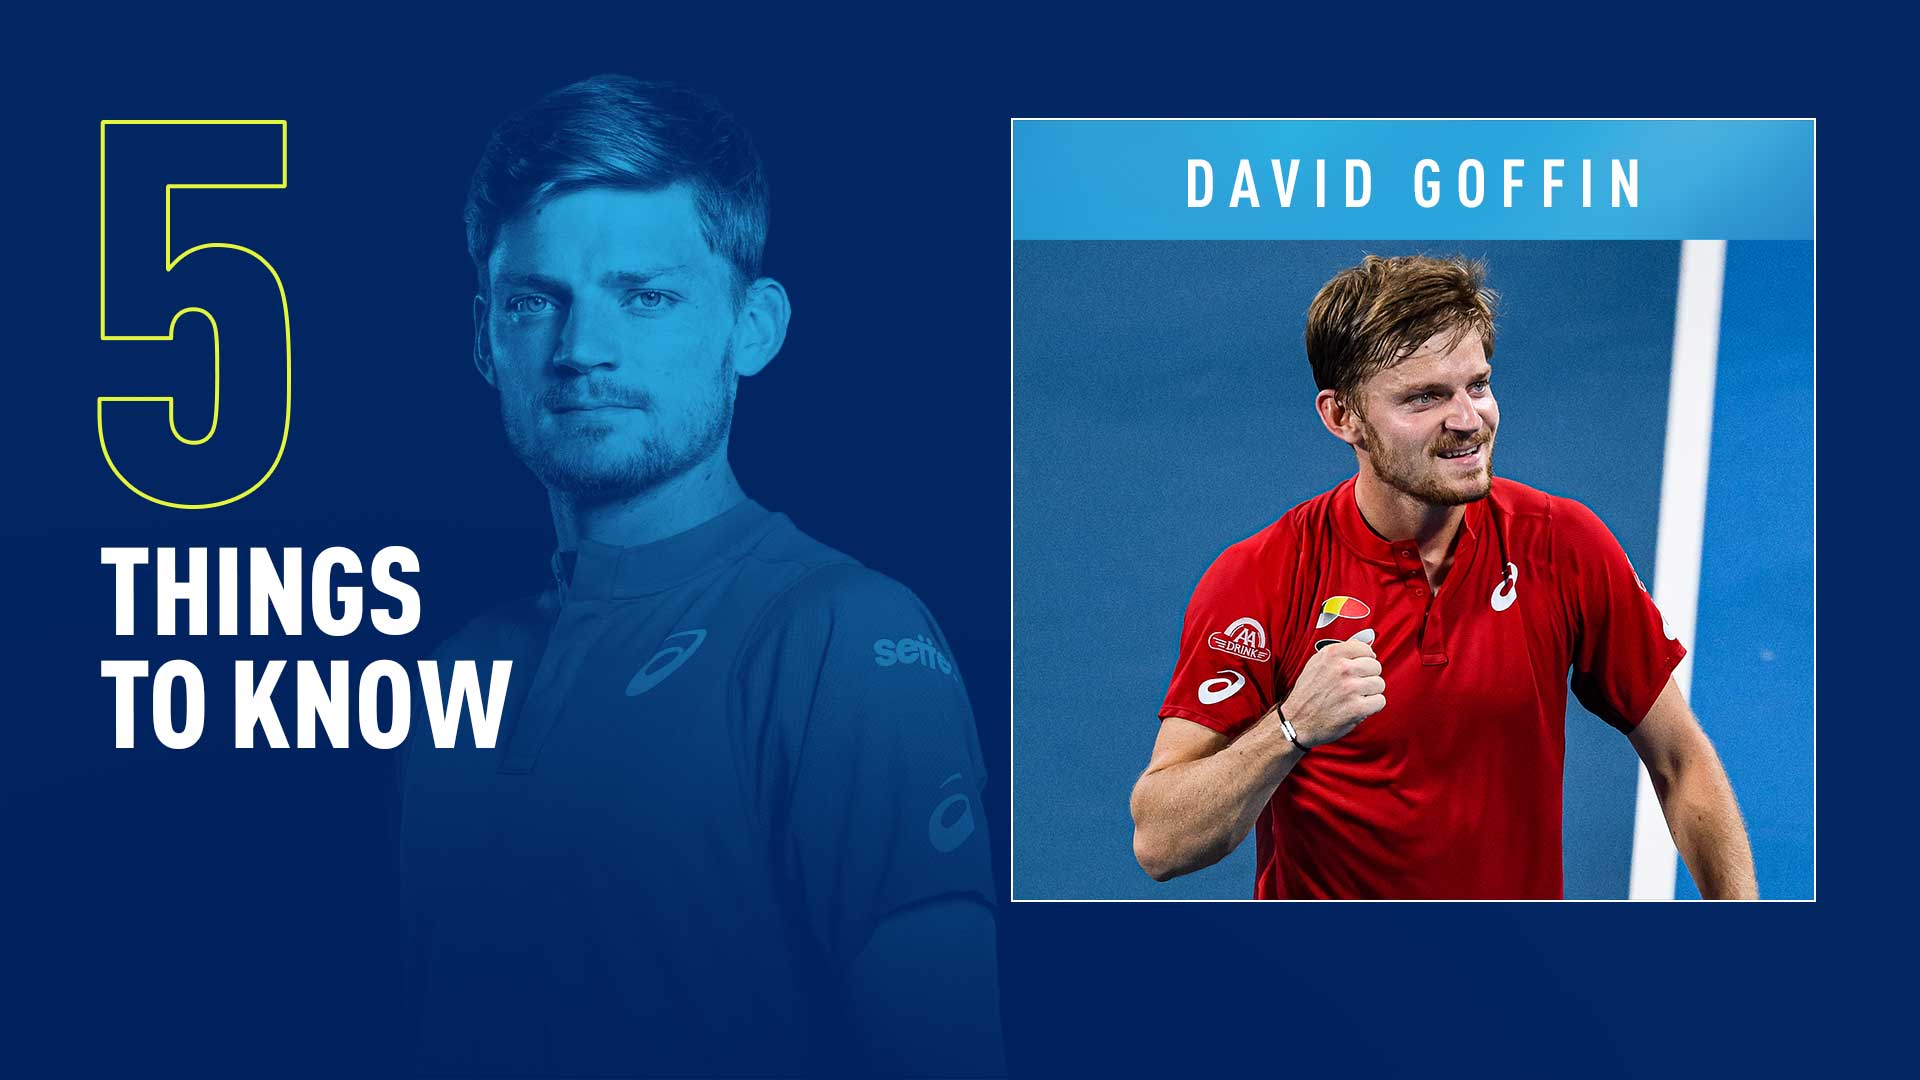 David Goffin reached a career-high No. 7 in the FedEx ATP Rankings on 20 November 2017.